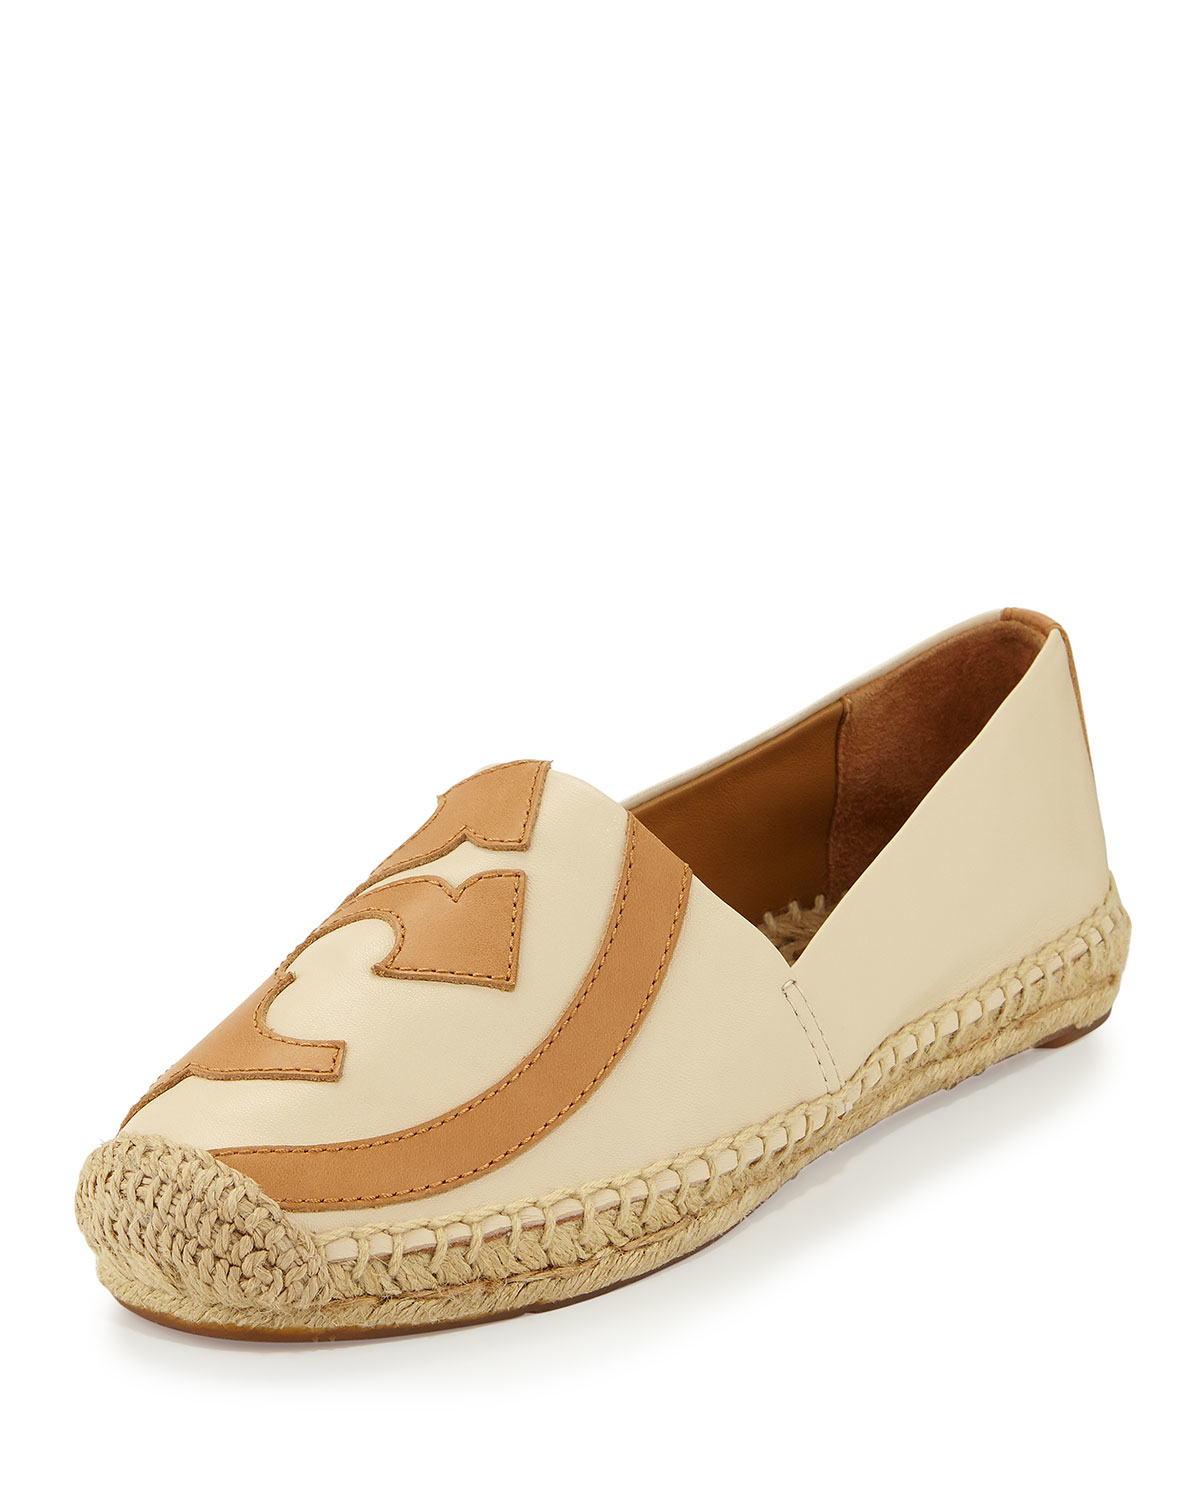 1d2b3211475 ... closeout lyst tory burch lonnie logo espadrille flat in natural aaa89  a925c